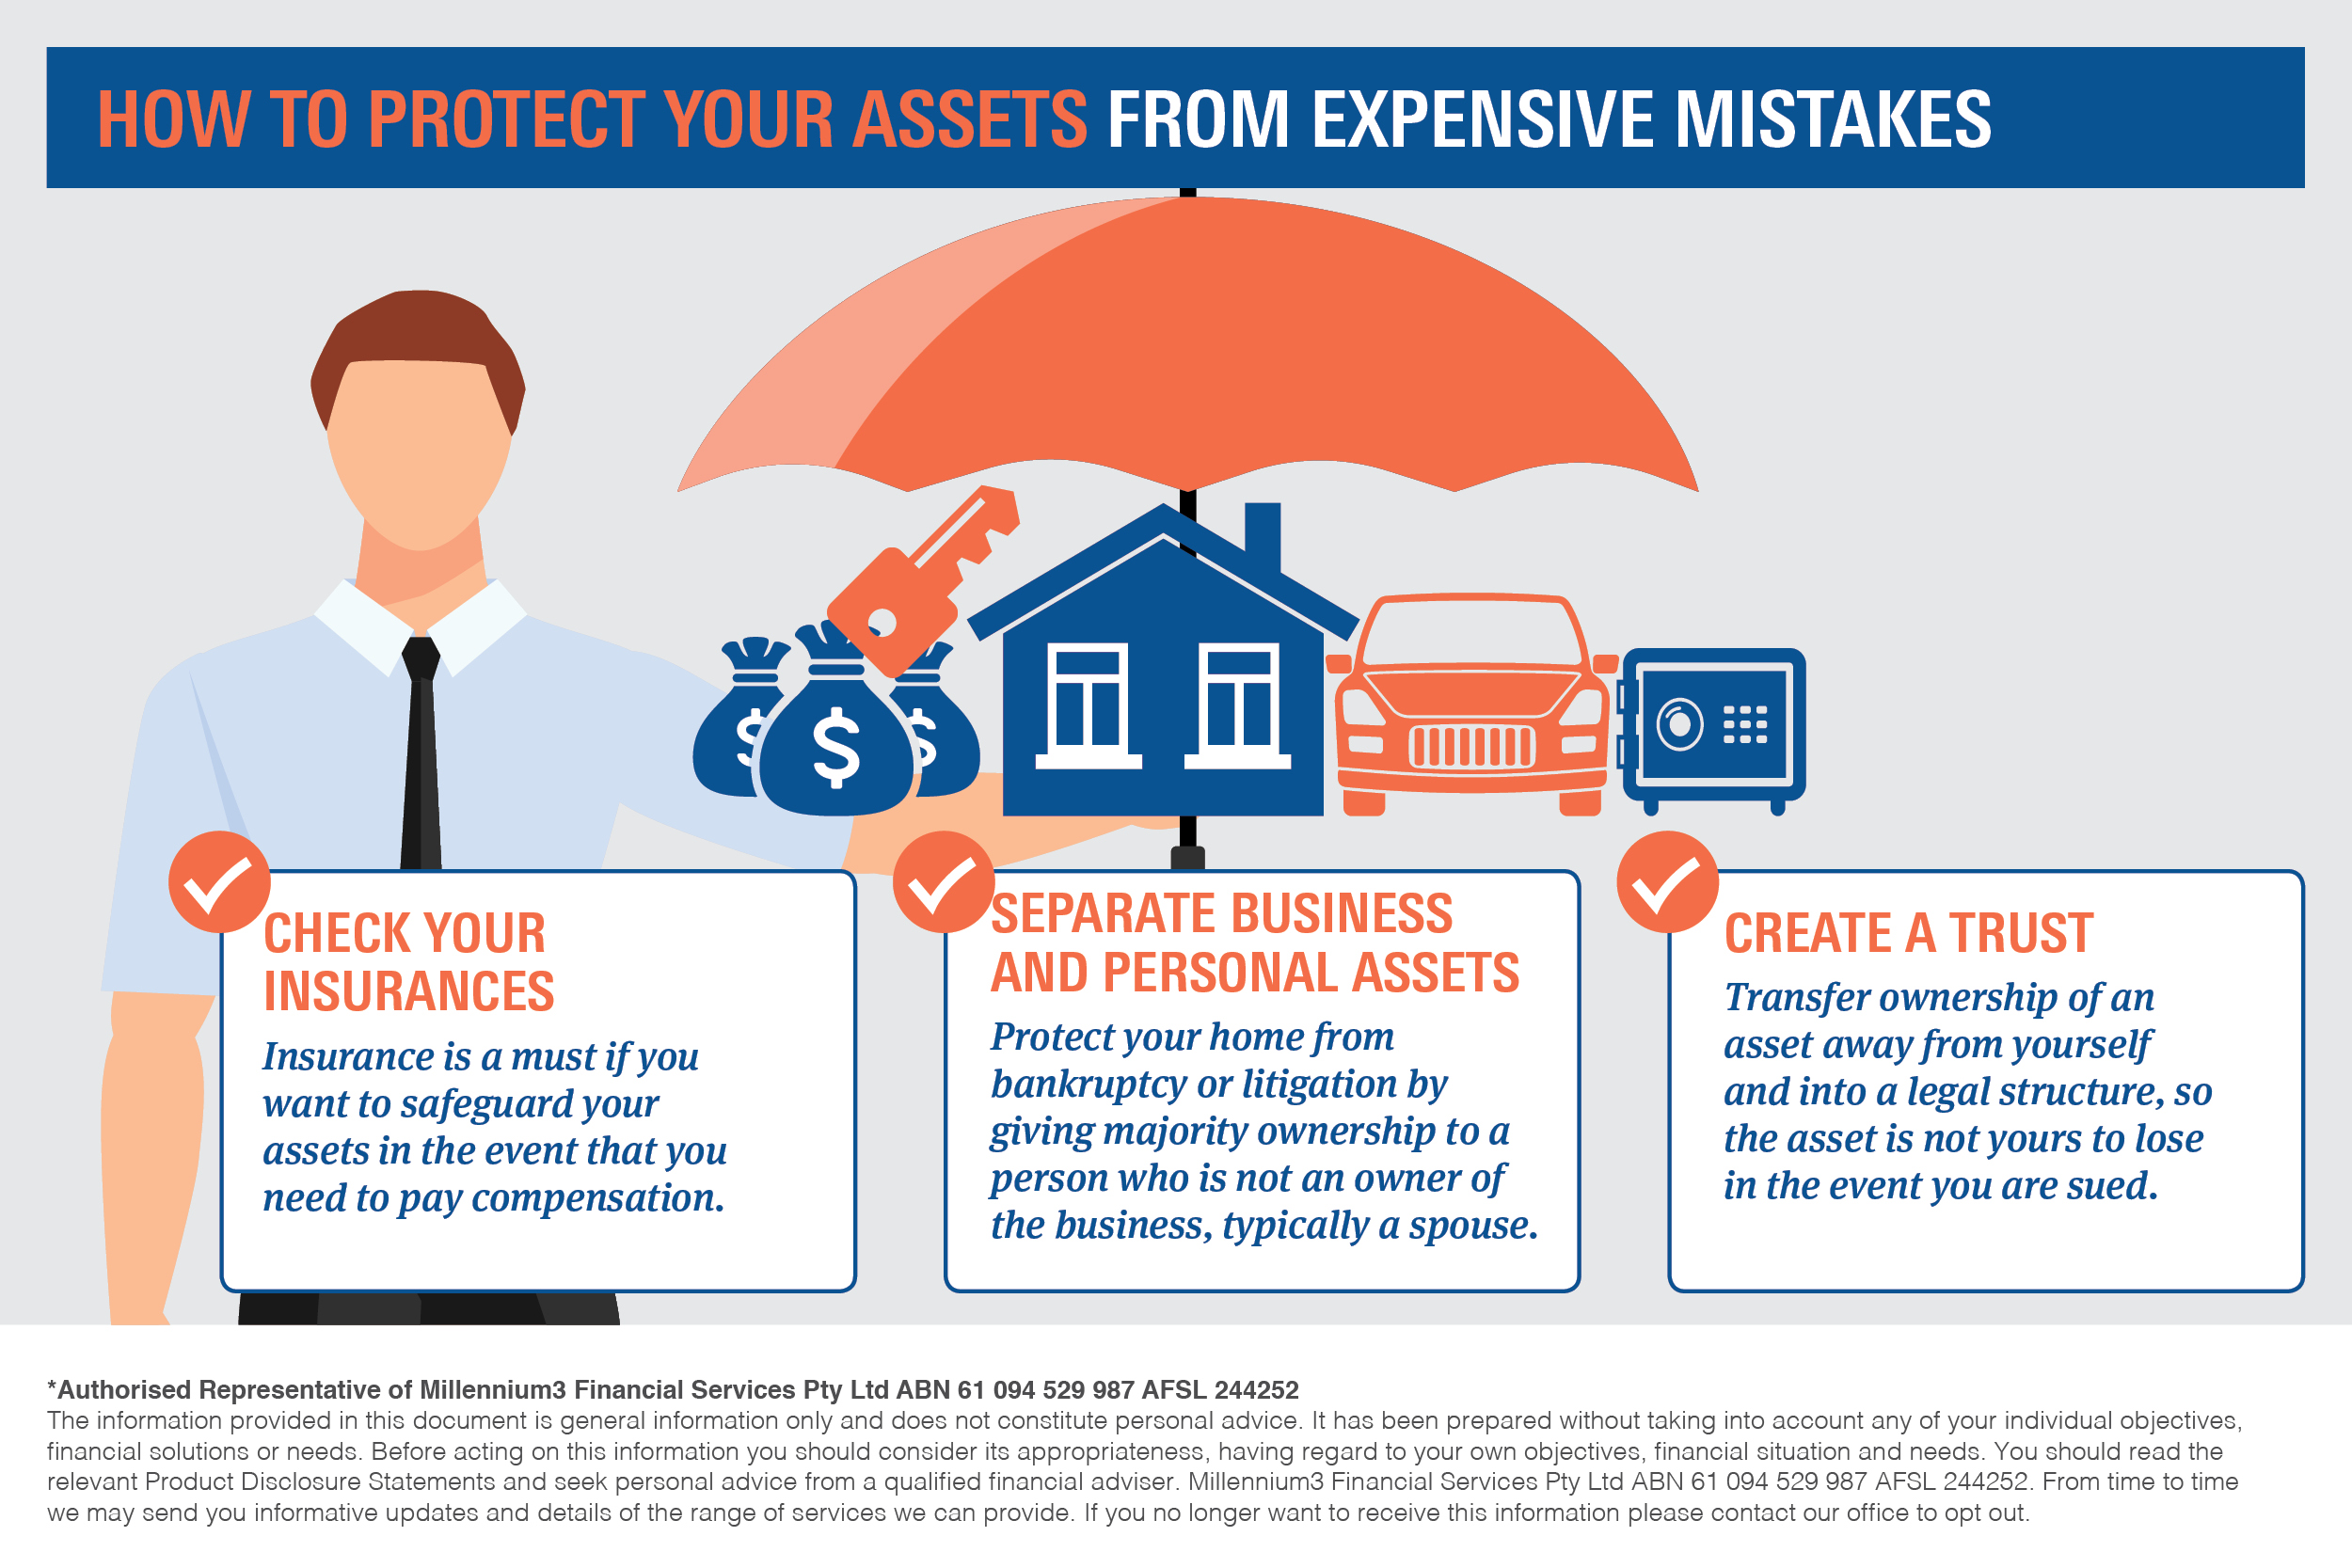 How To Protect Your Assets From Expensive Mistakes  M3. Police Officer College Degree. Texas Low Cost Auto Insurance. Vcu Social Work Masters Pc Repair And Upgrade. Assisted Living Gainesville Ga. Home Security Systems Dallas. University Of Boston Medical School. Renters Insurance Basics Check Water Hardness. Osx Migration Assistant Brand Strategy Agency